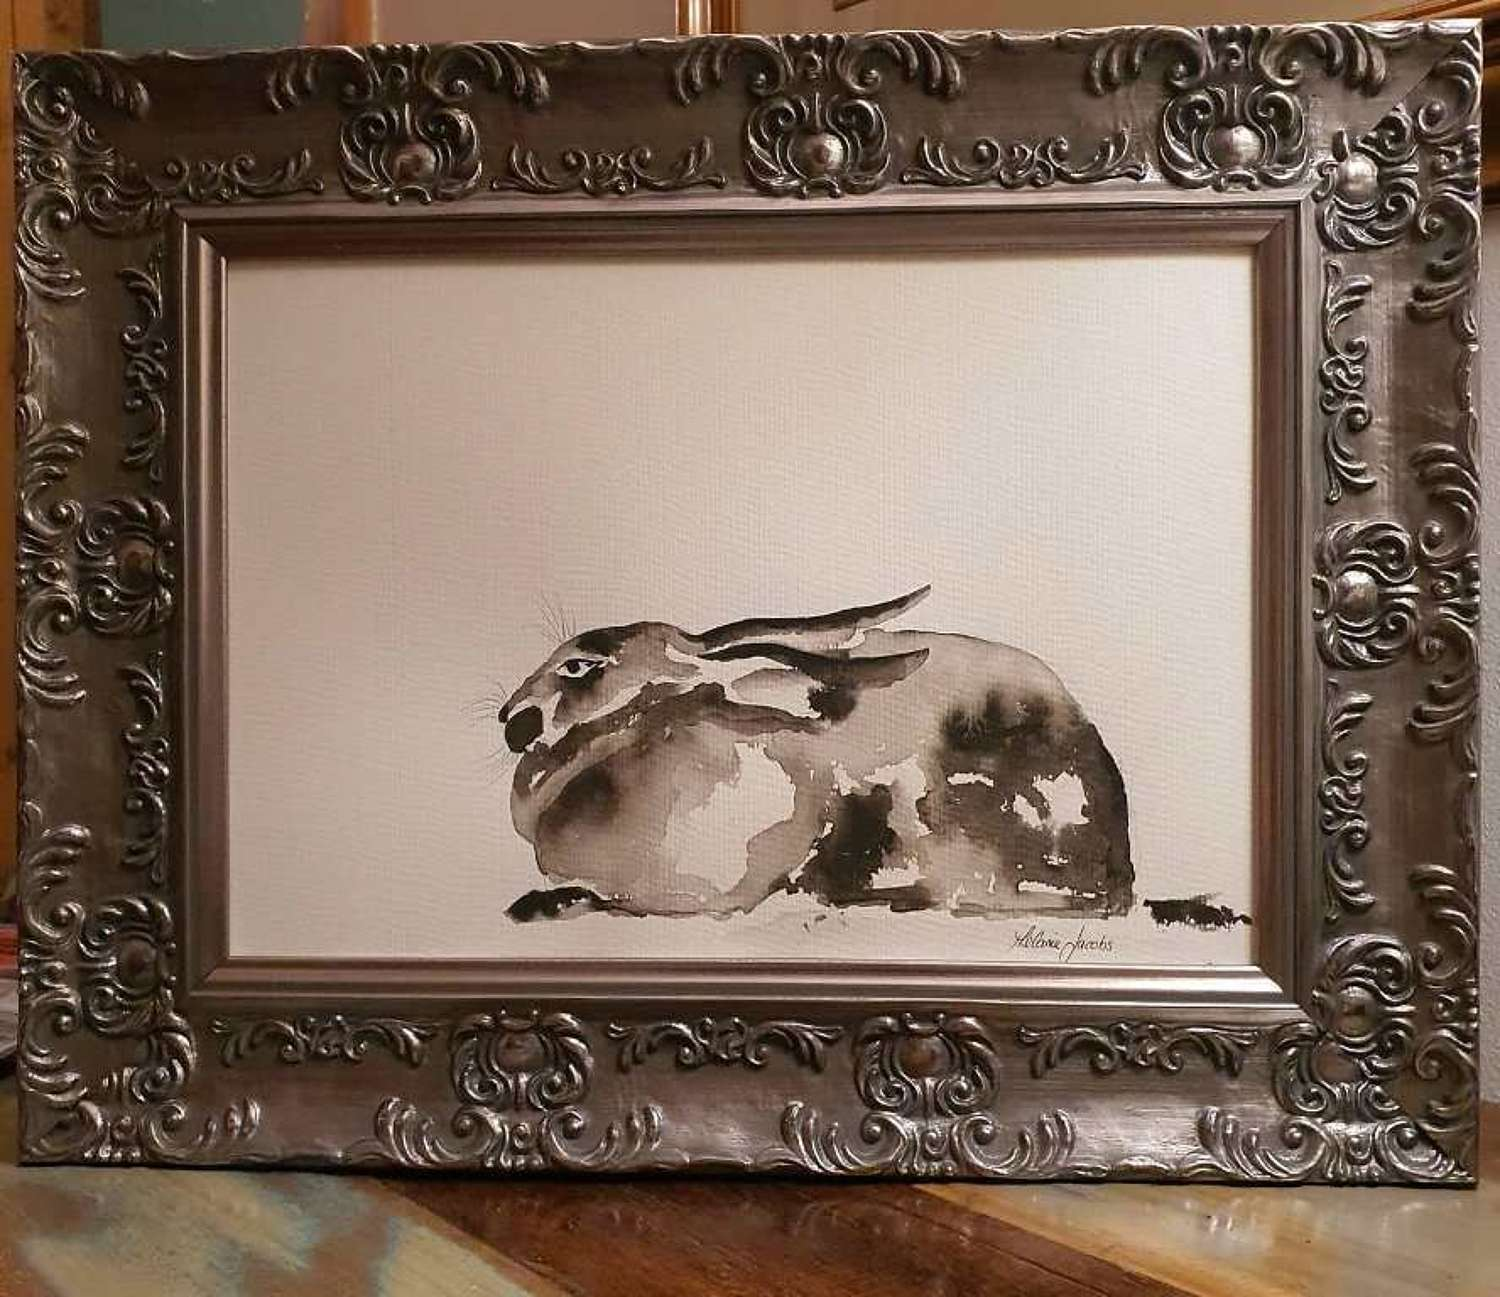 Orion The Hare - Original Japanese Ink By Melanie Jacobs